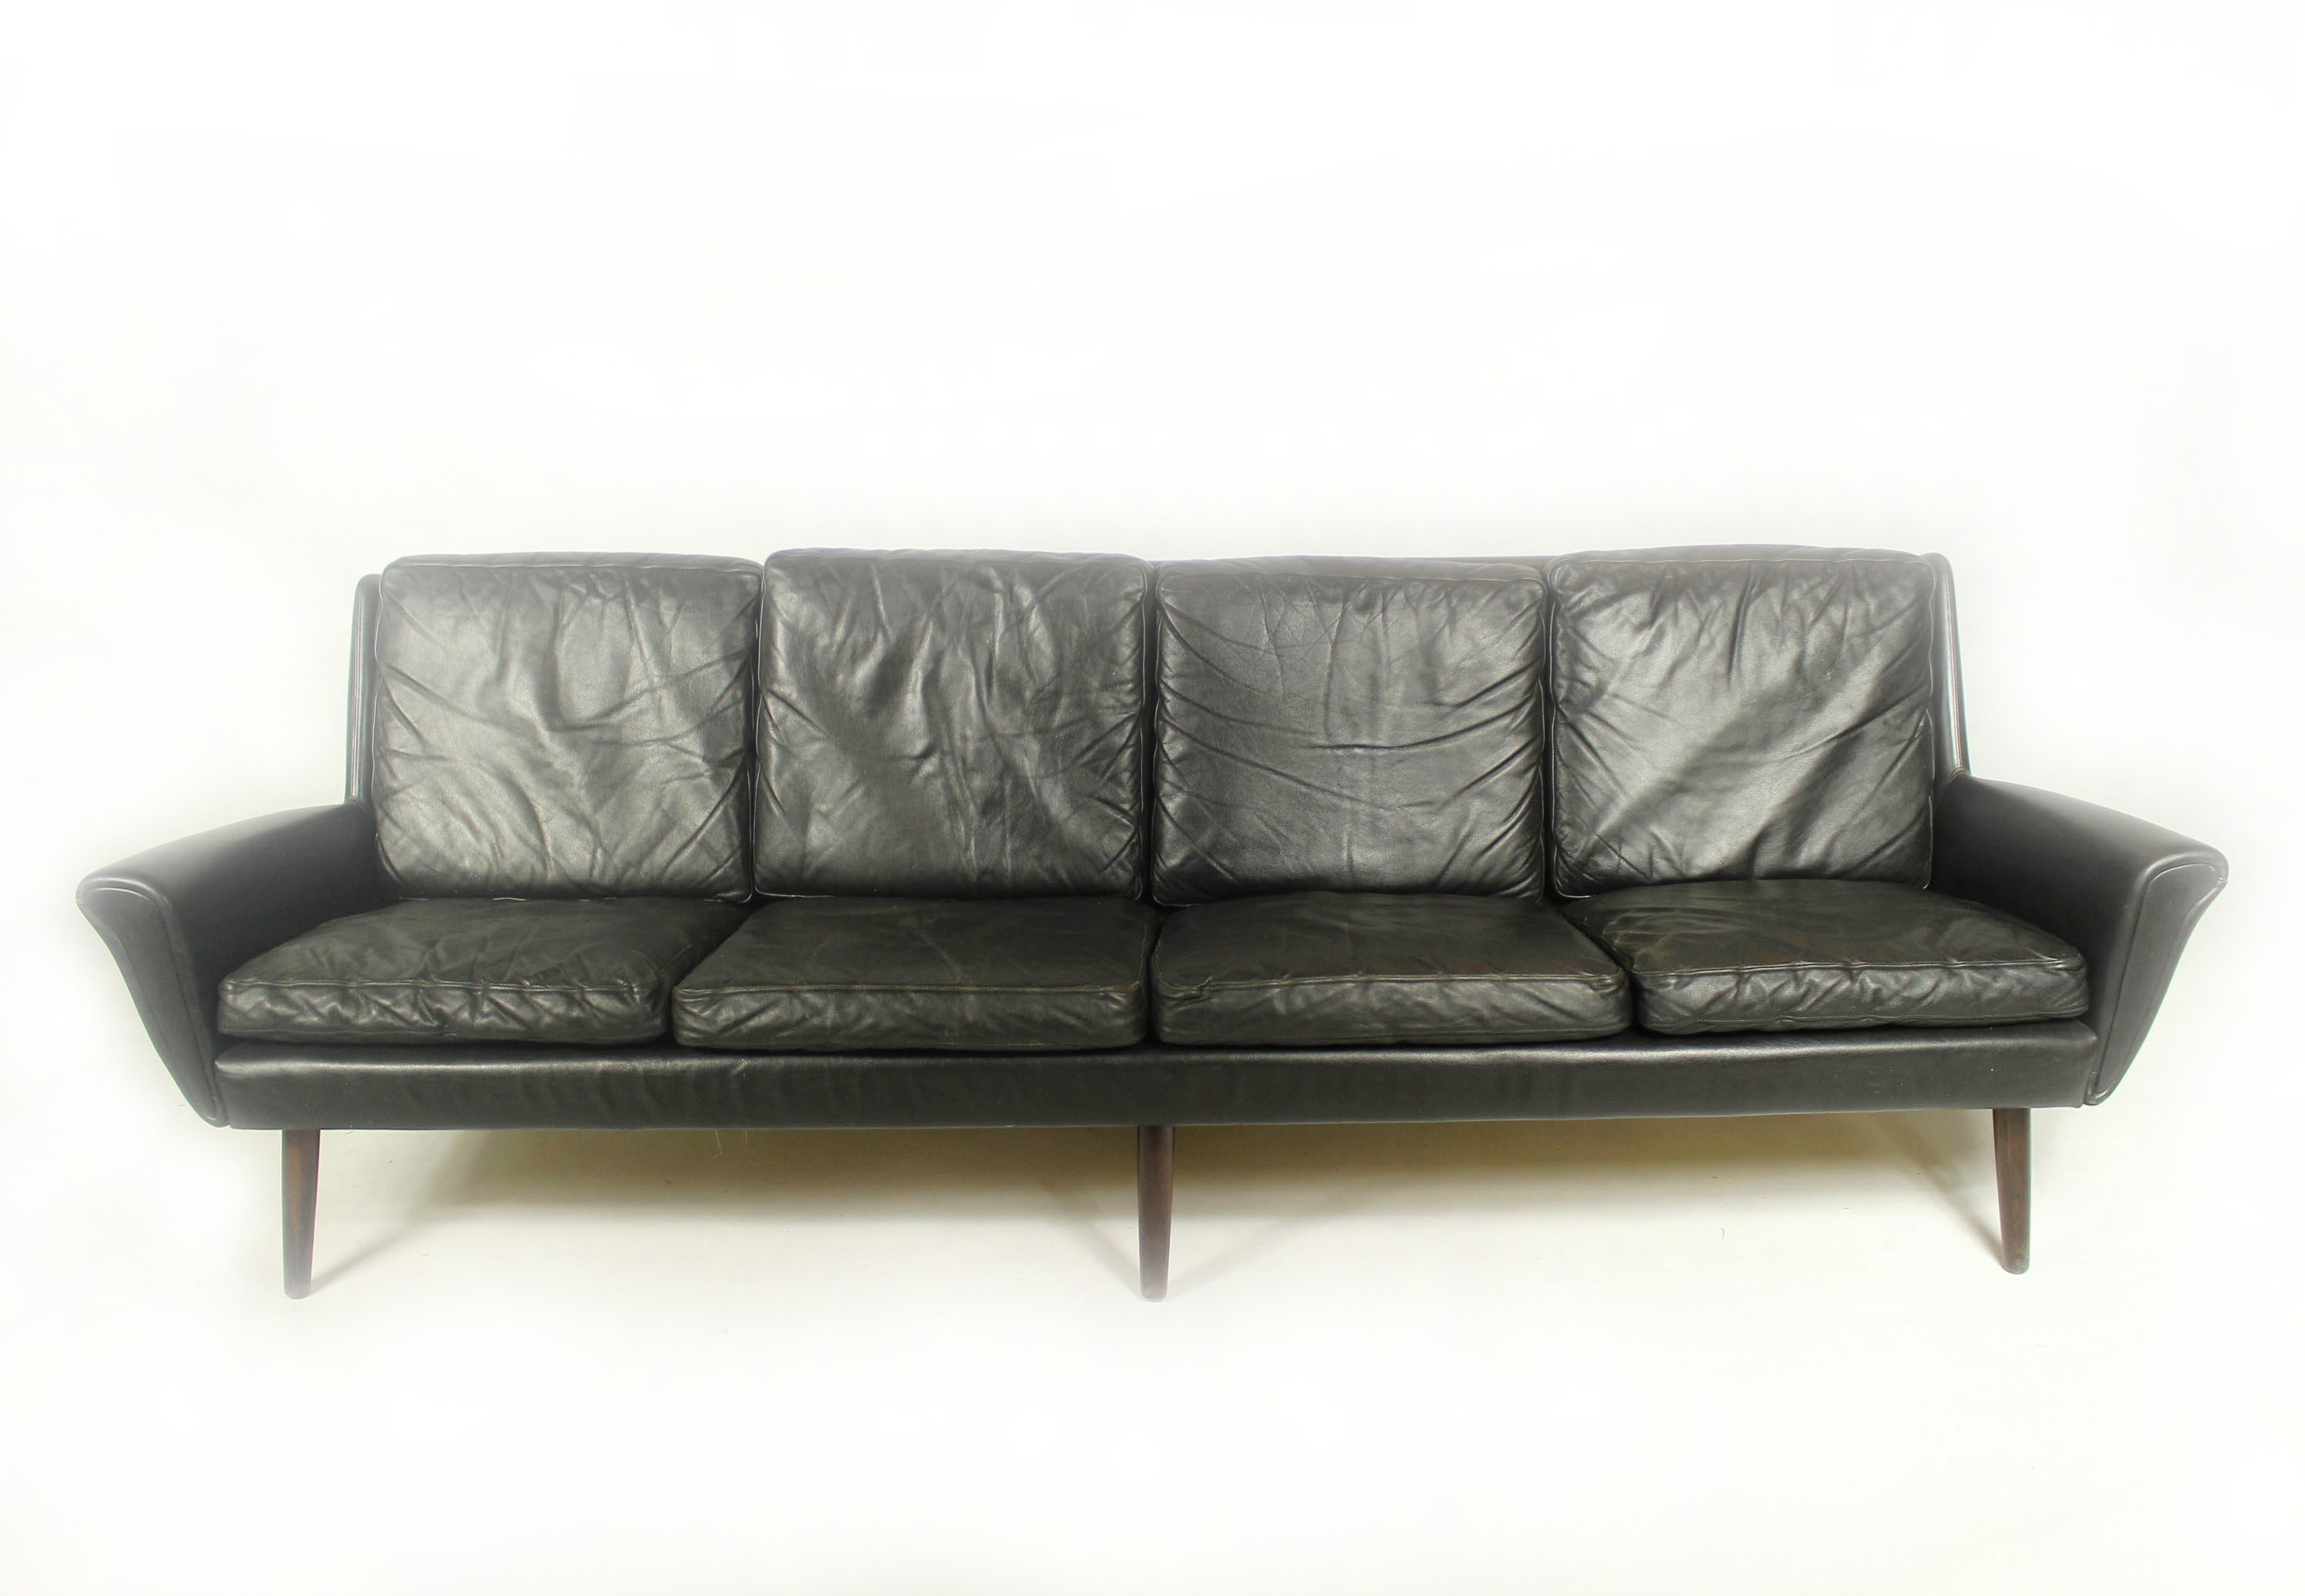 Vintage Leather 4 seater Sofa, 1960s | #91474